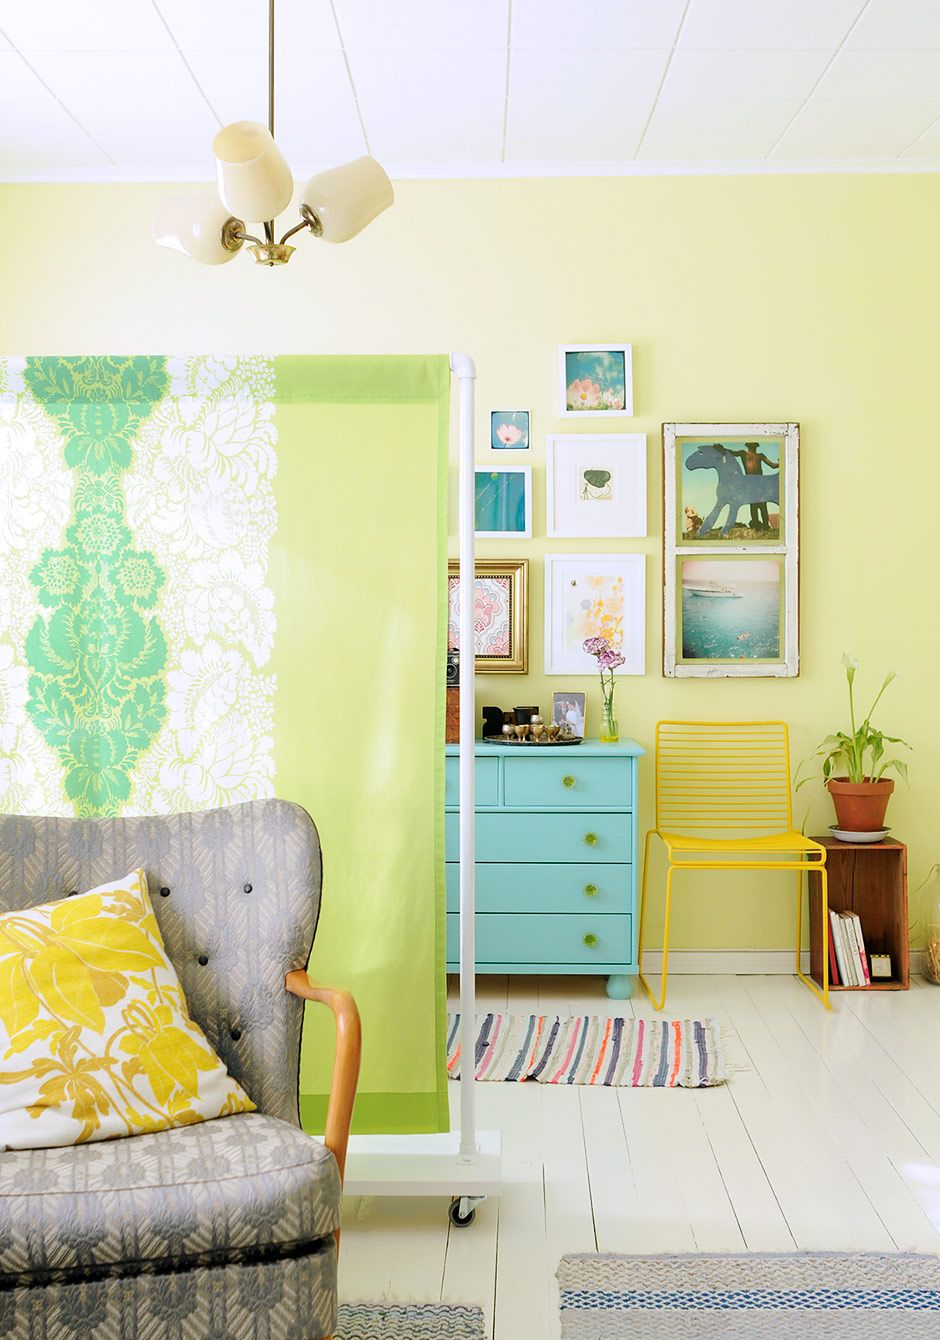 Diy room divider ideas home now we have a screen this was such a fun and shared project i